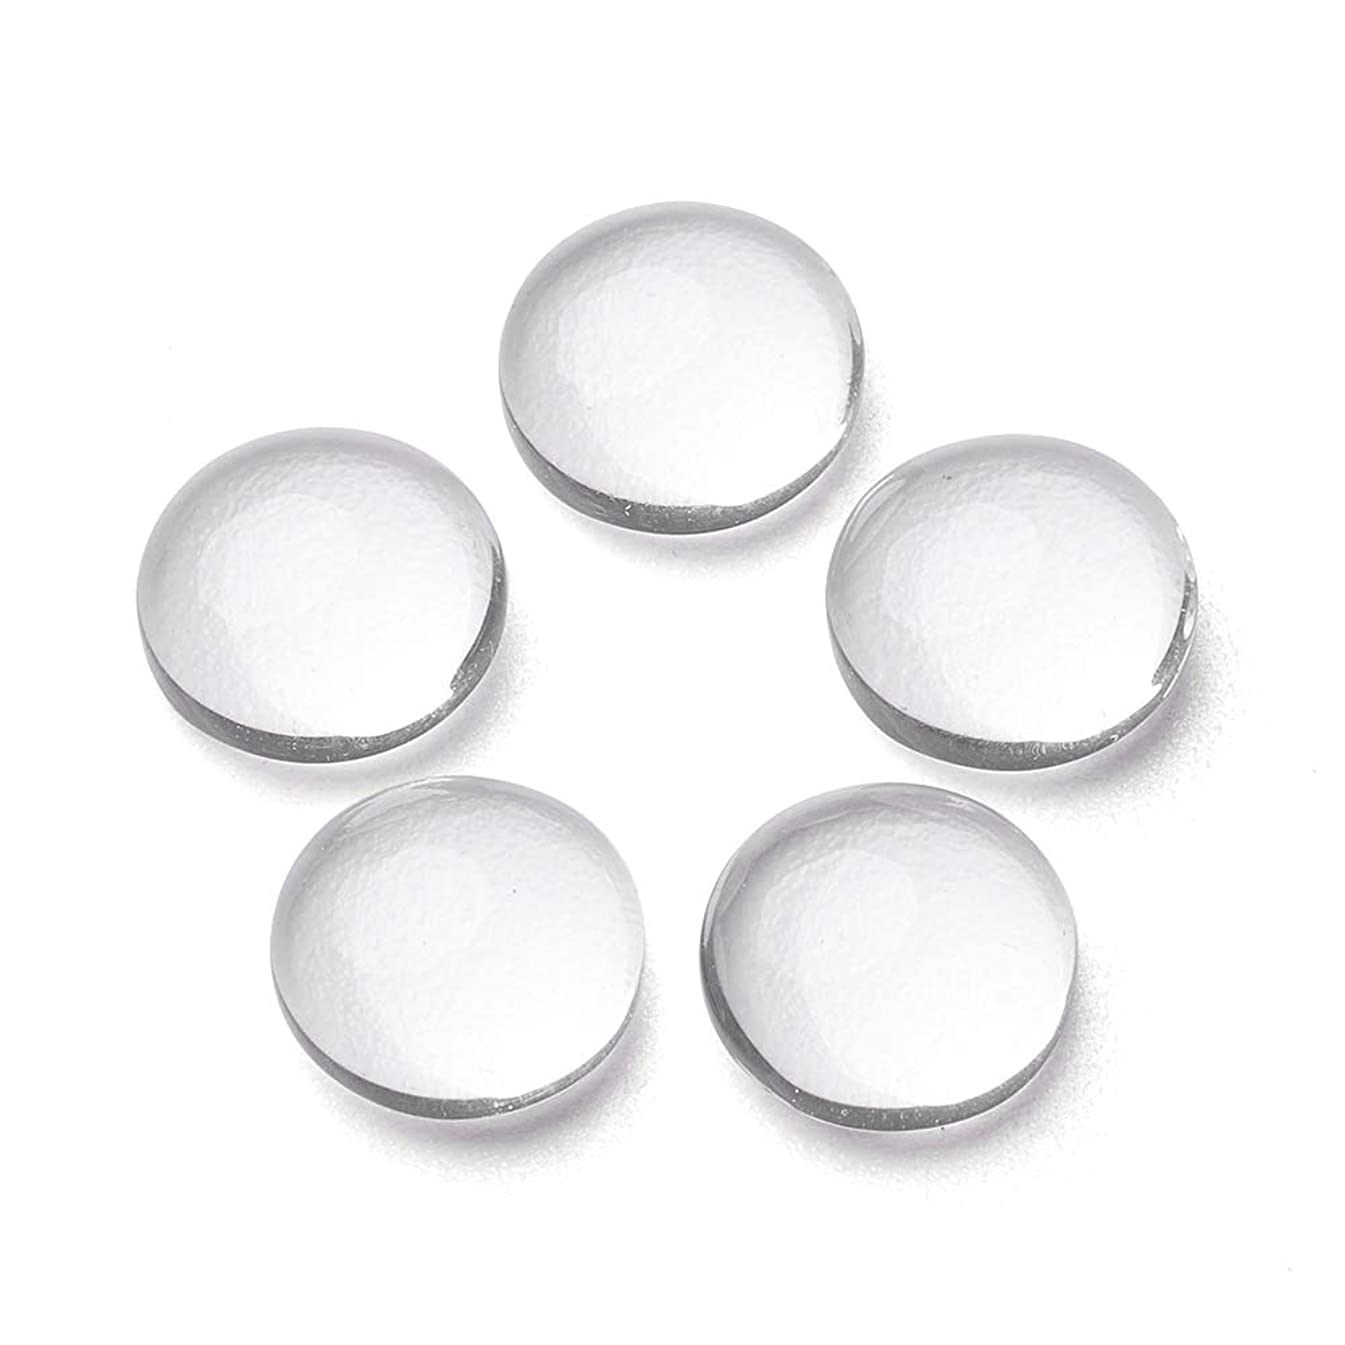 Craftdady 200Pcs Transparent Clear Glass Cabochons 8mm Flat Back Half Round Dome Tiles for Photo Pendant Jewelry Craft Making